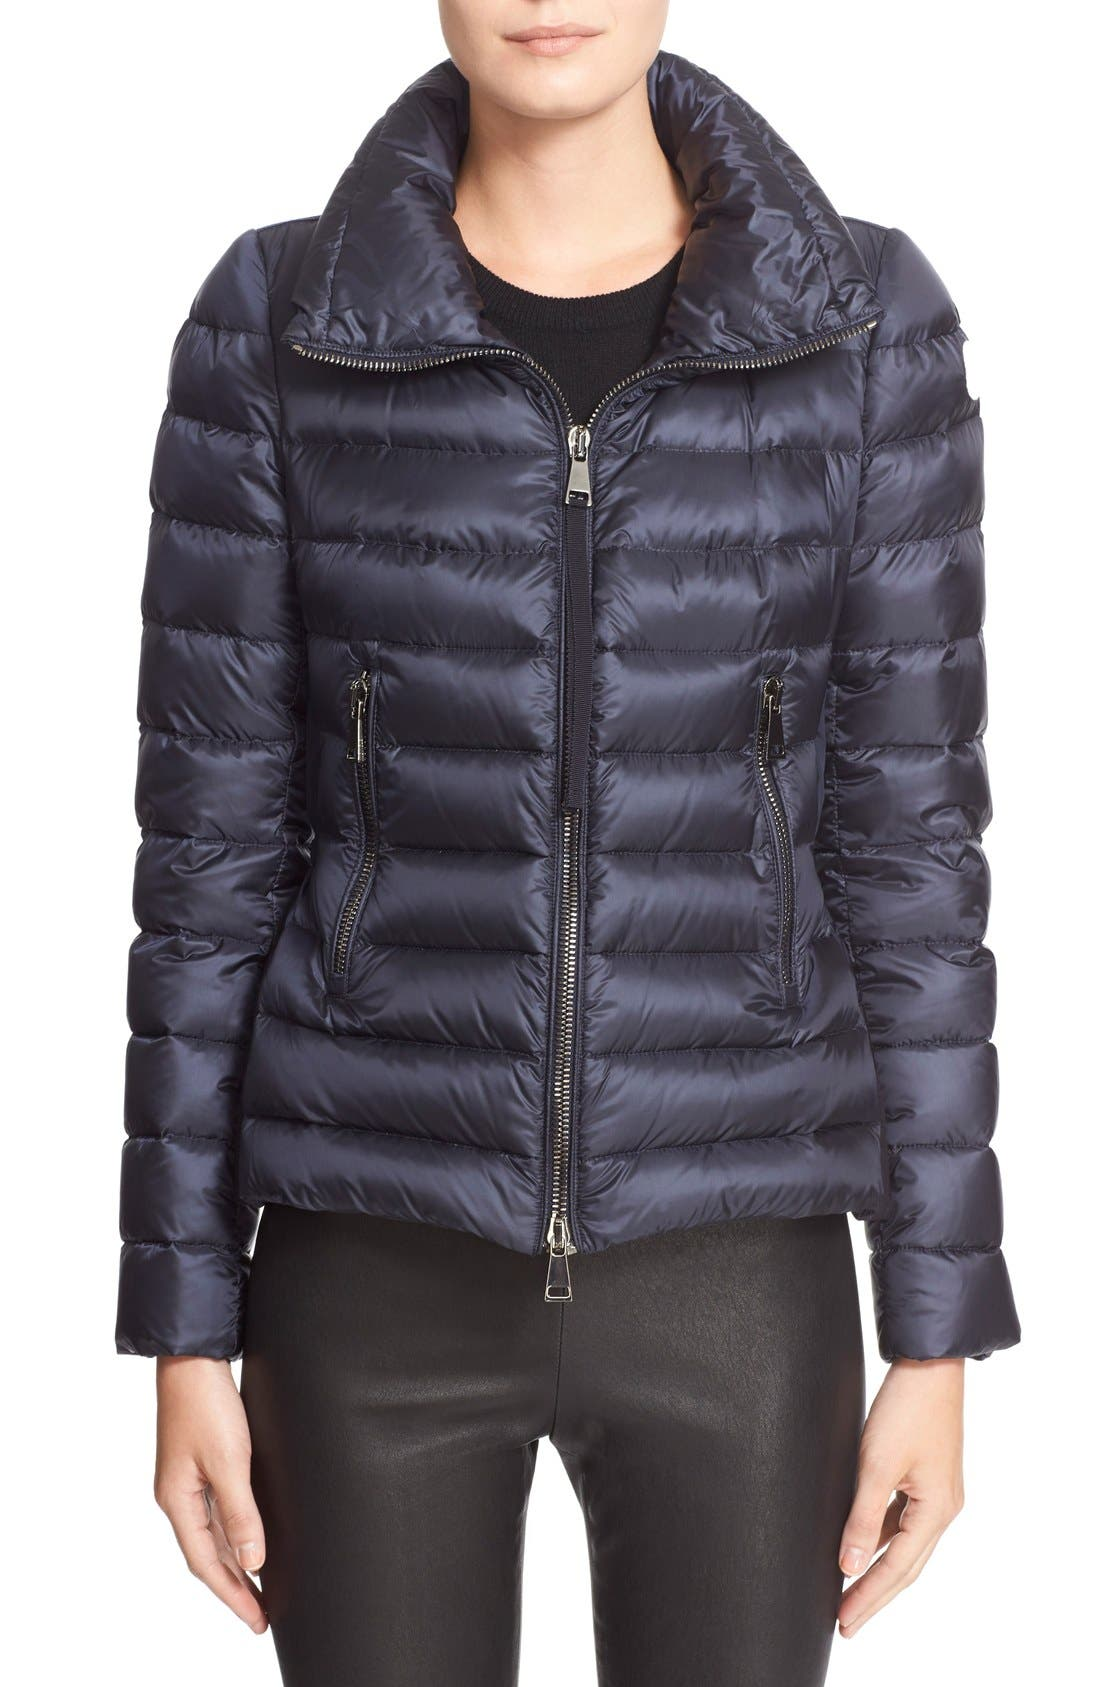 Alternate Image 1 Selected - Moncler 'Agape' Water Resistant Hooded Down Jacket